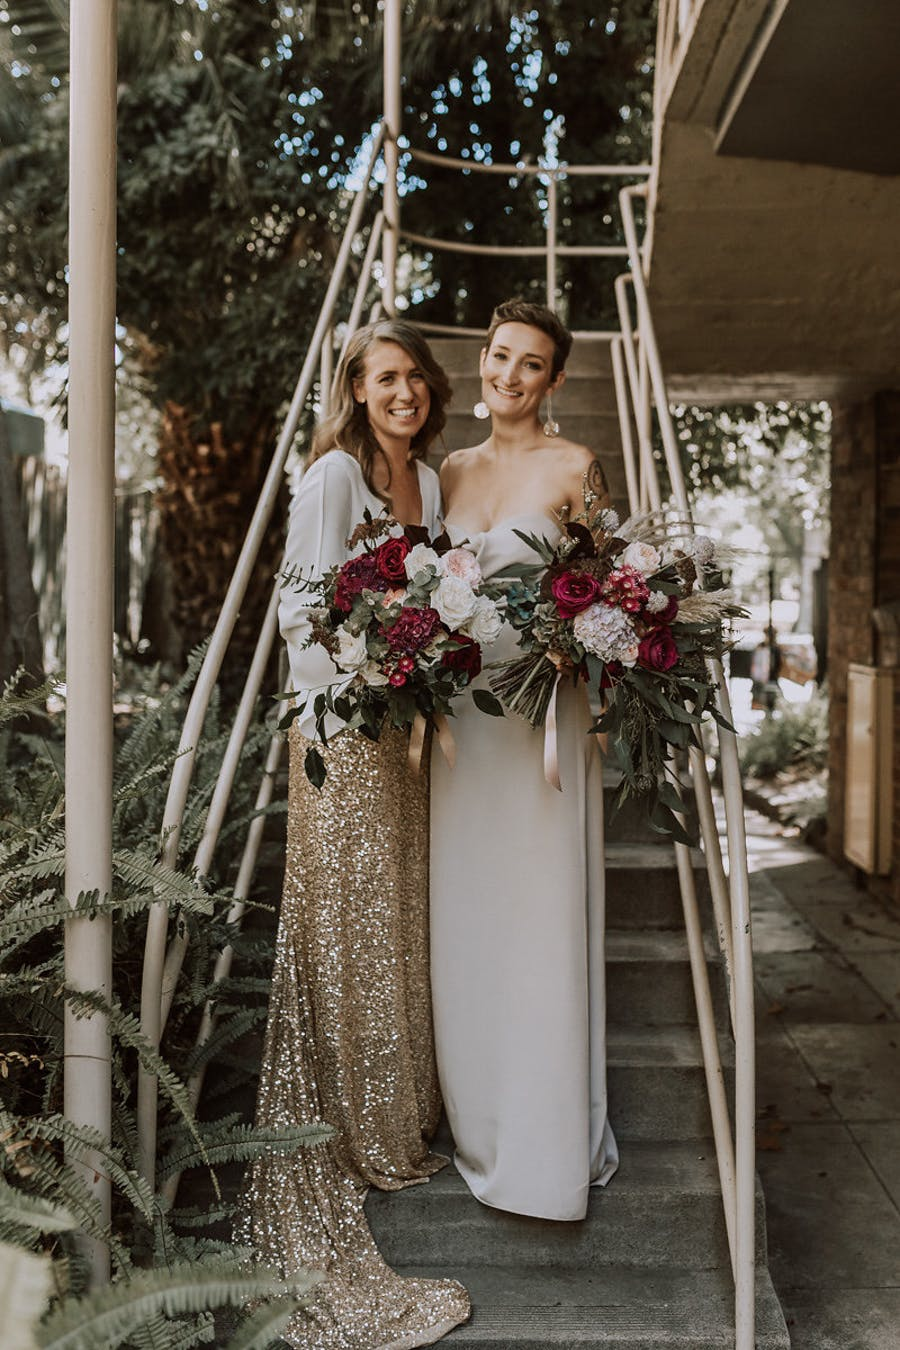 These beautiful brides organized a very simple and stylish wedding filled with love and spruce dup with glitter